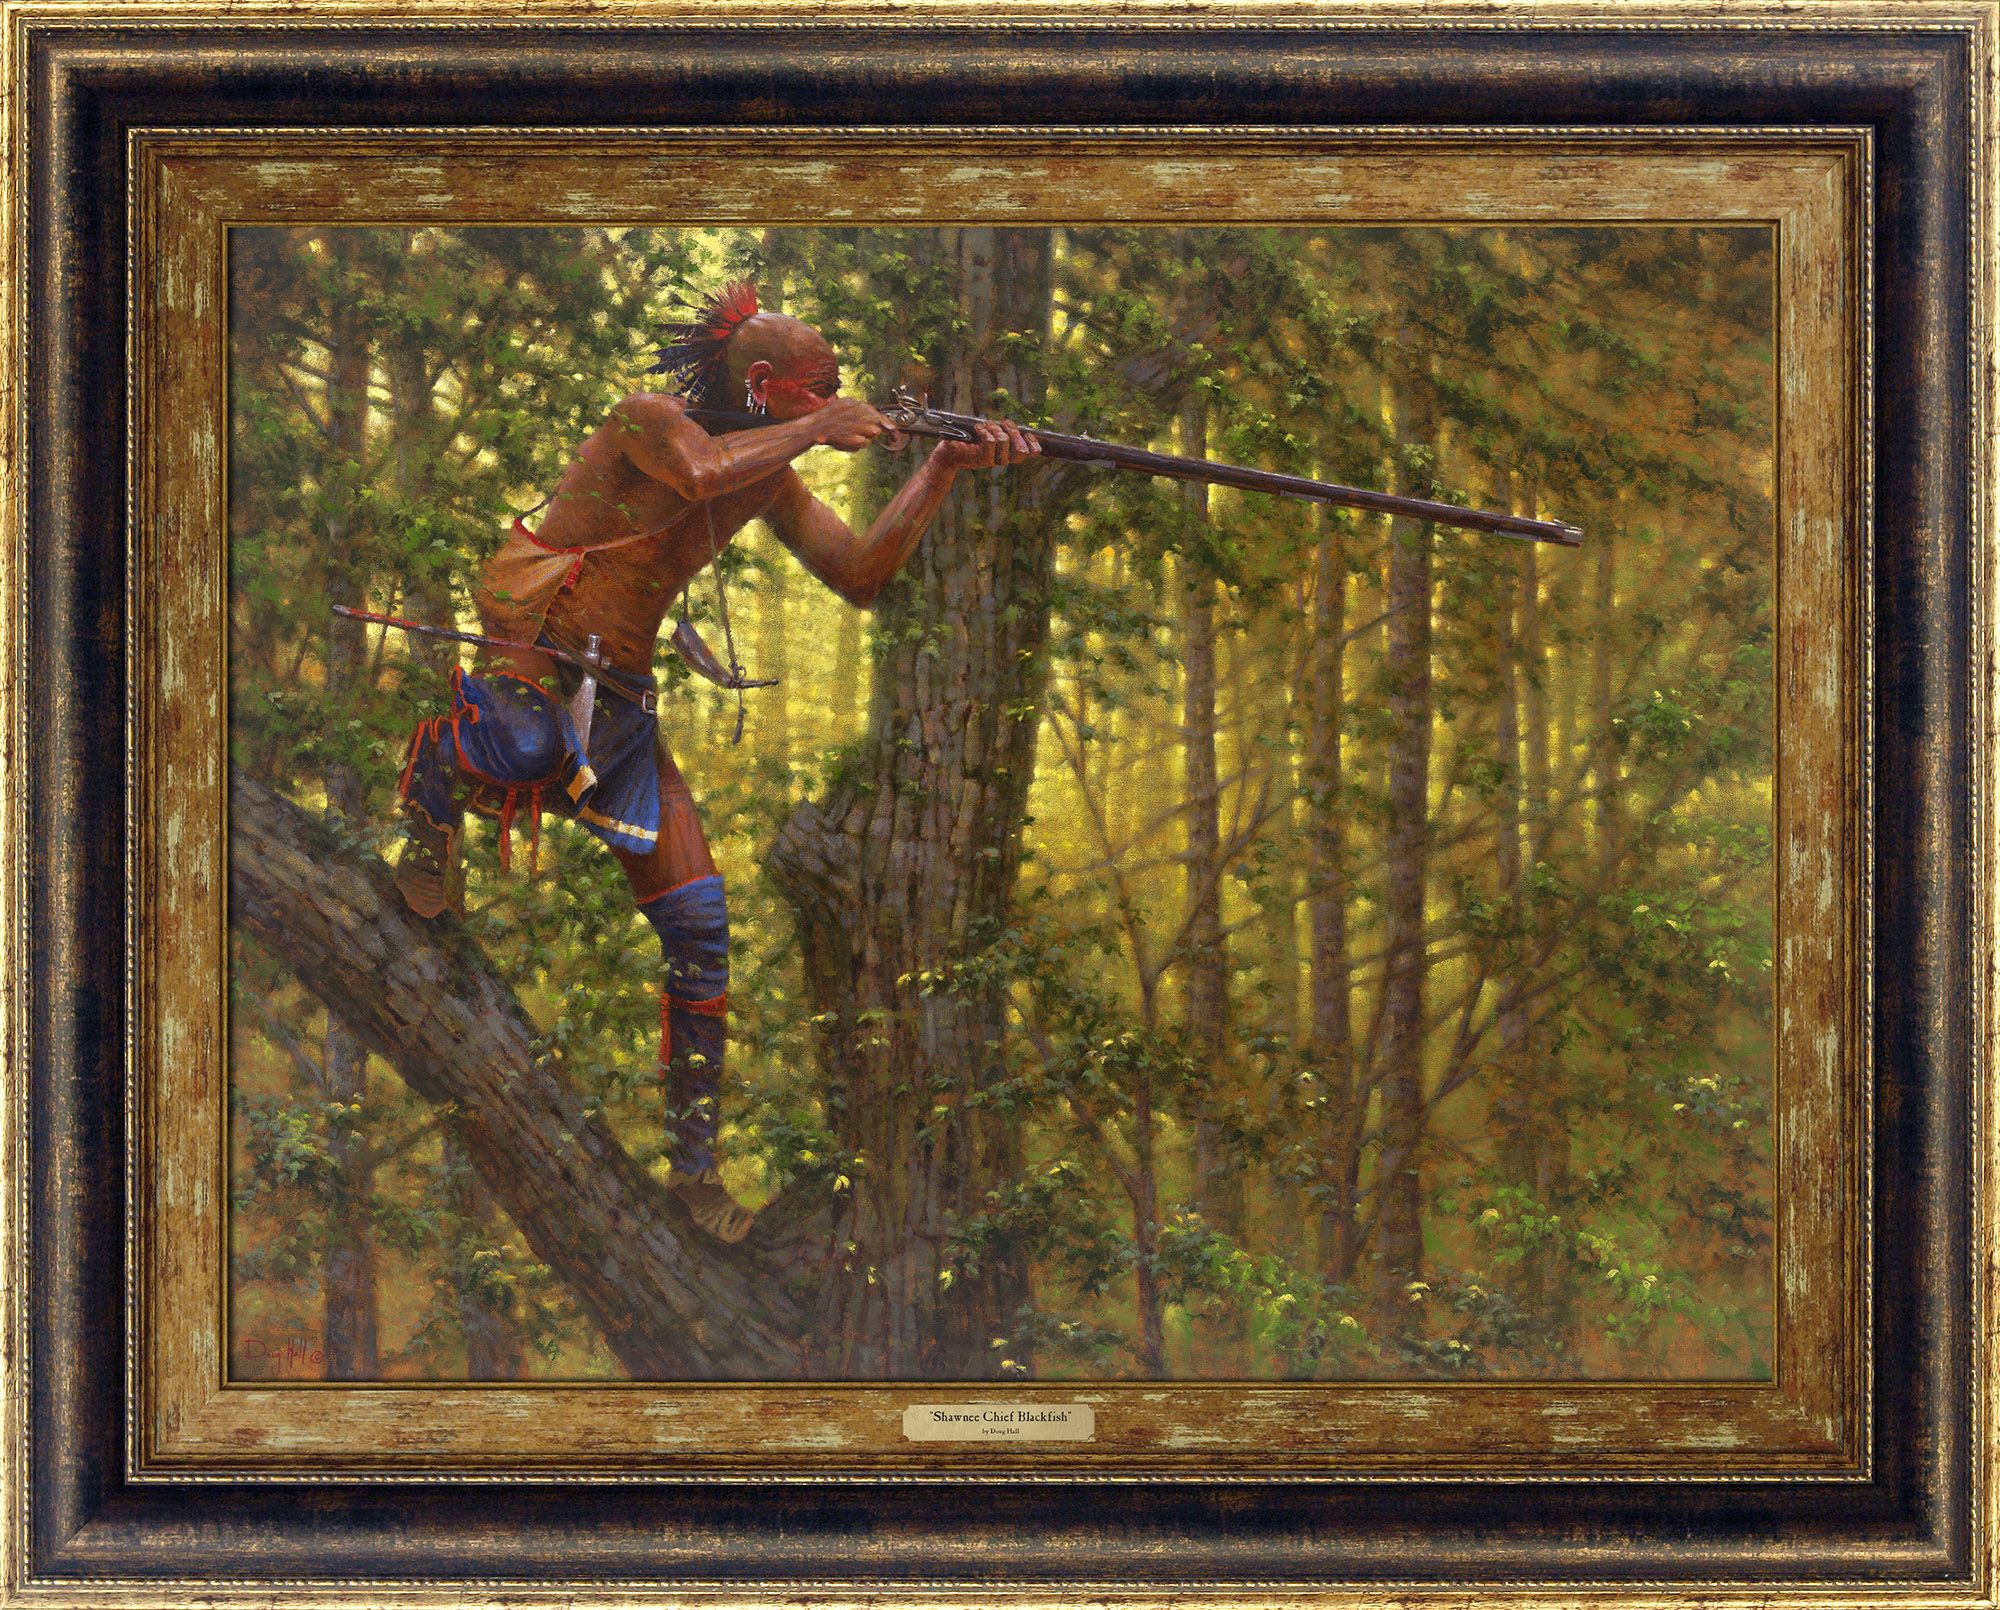 Shawnee Chief Blackfish_ 8205_612_27x36_Frame | Giclée